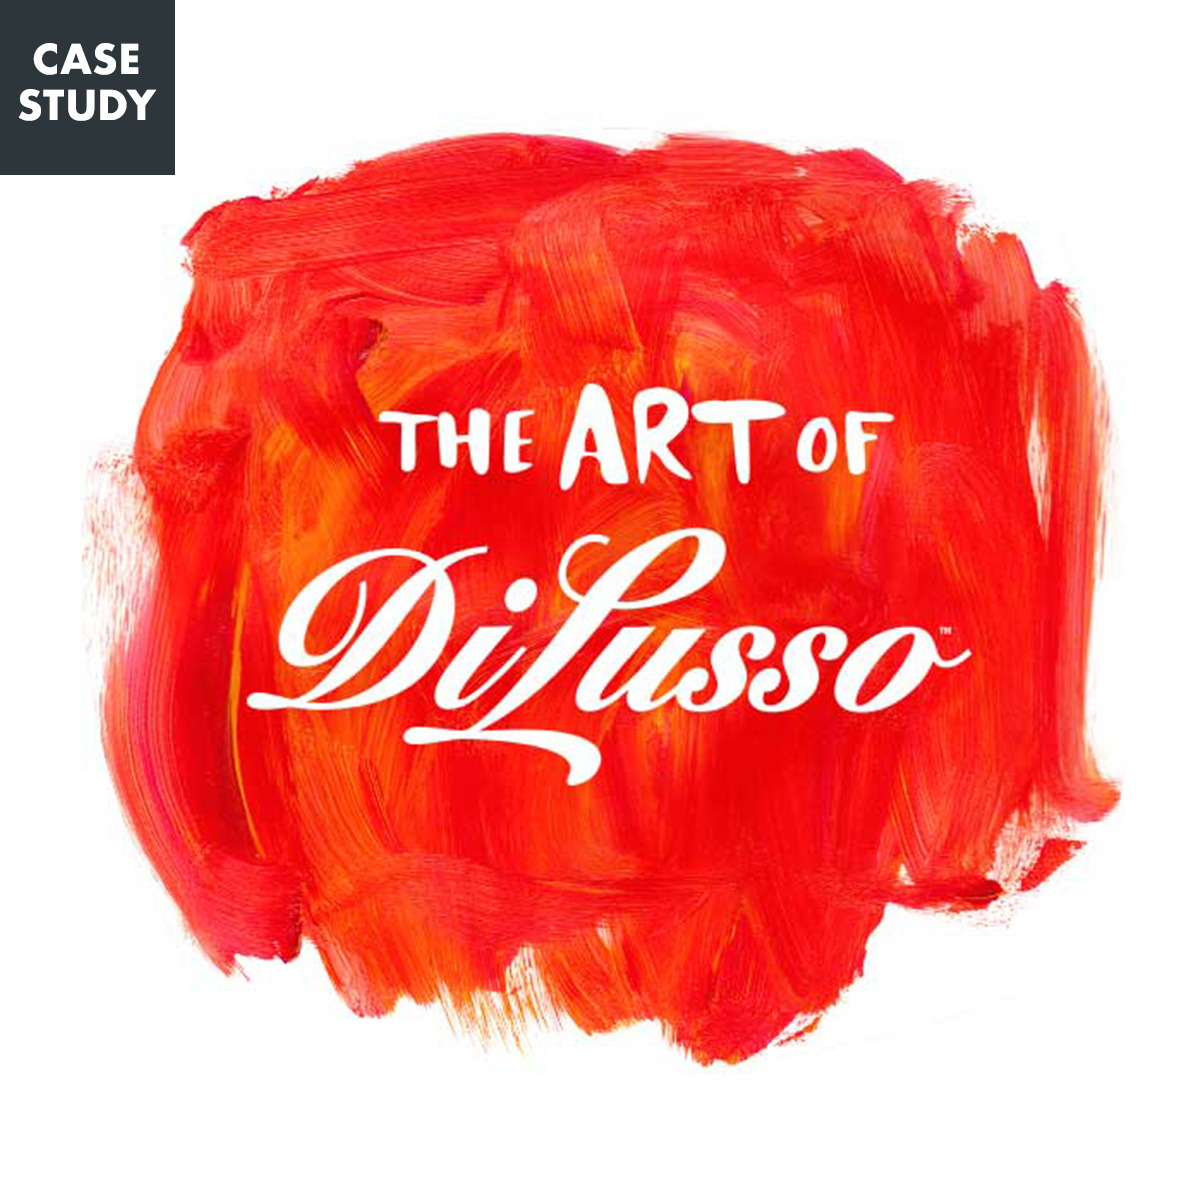 Case Study: The Art of Di Lusso